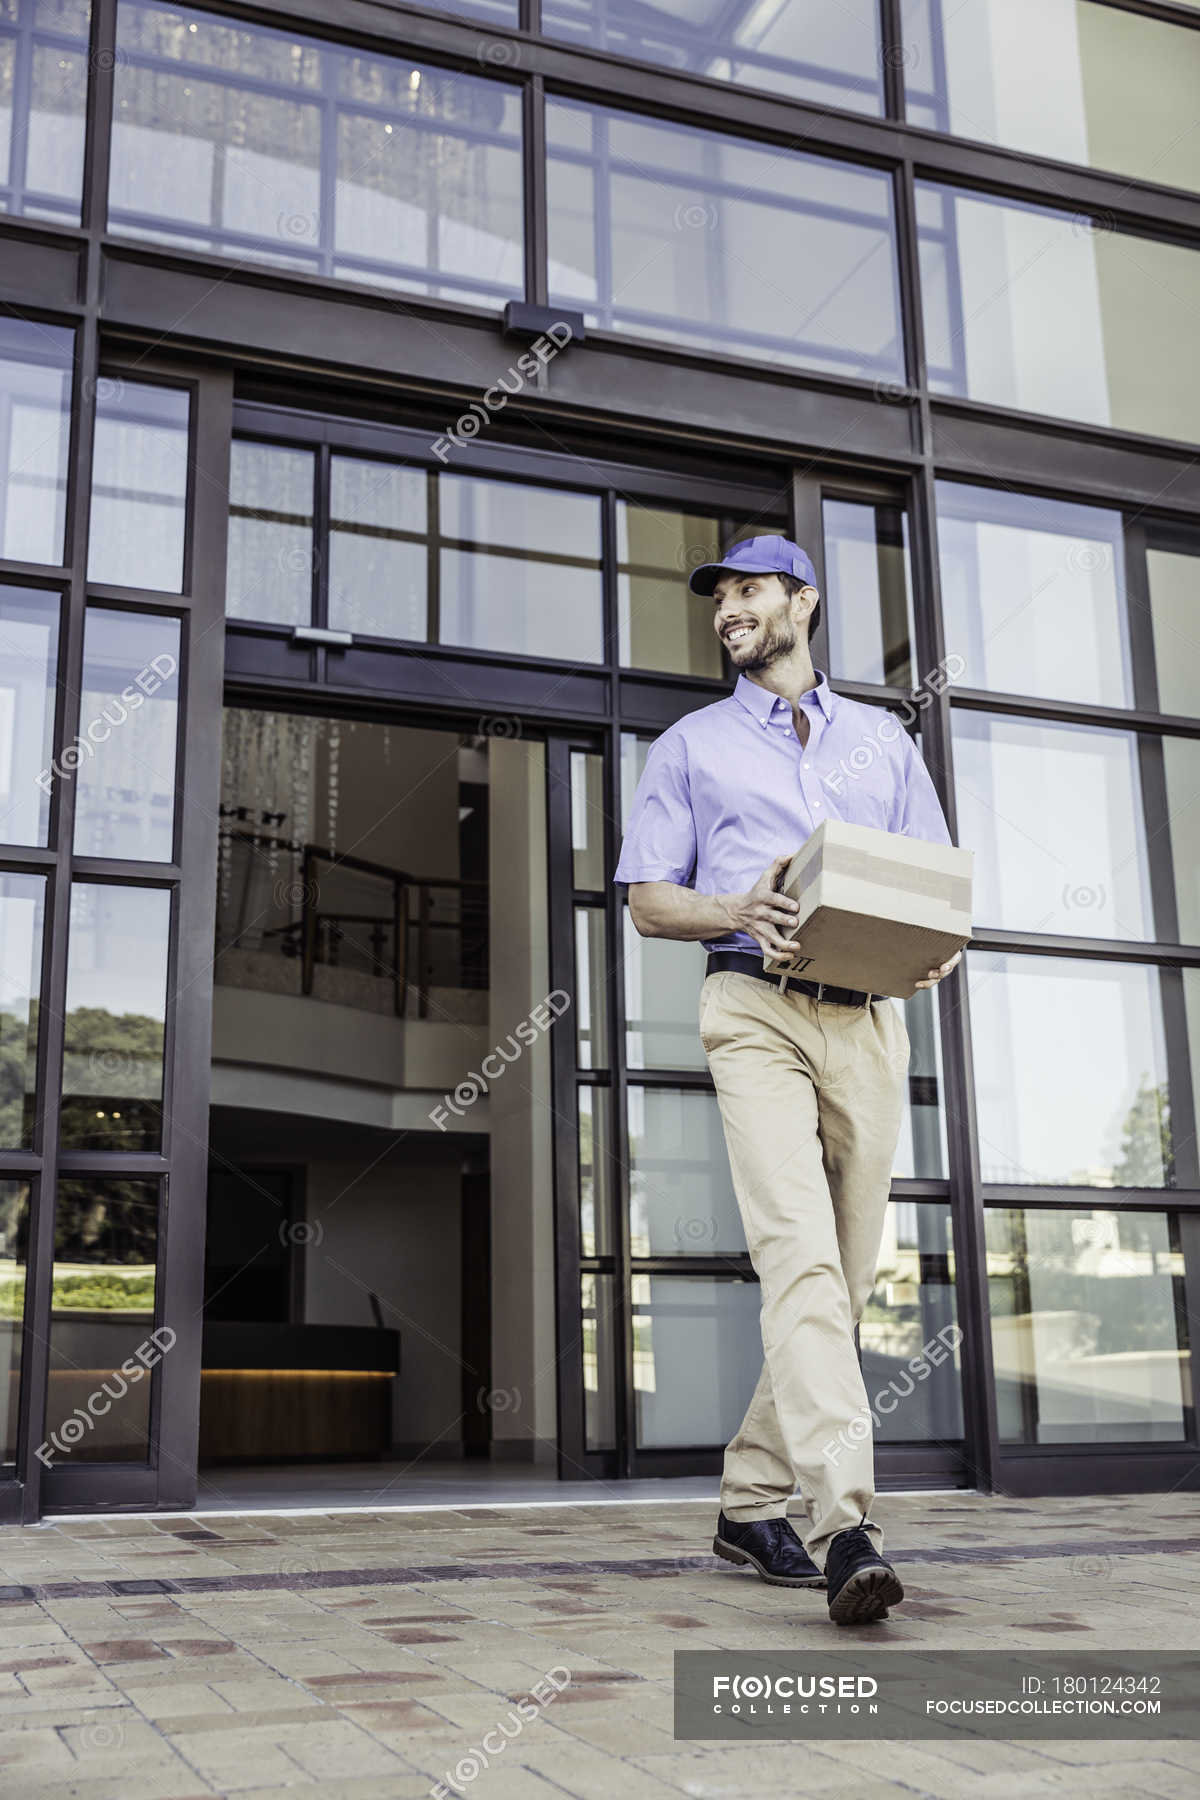 b140234b9 Delivery man carrying package outside office — one person, front ...